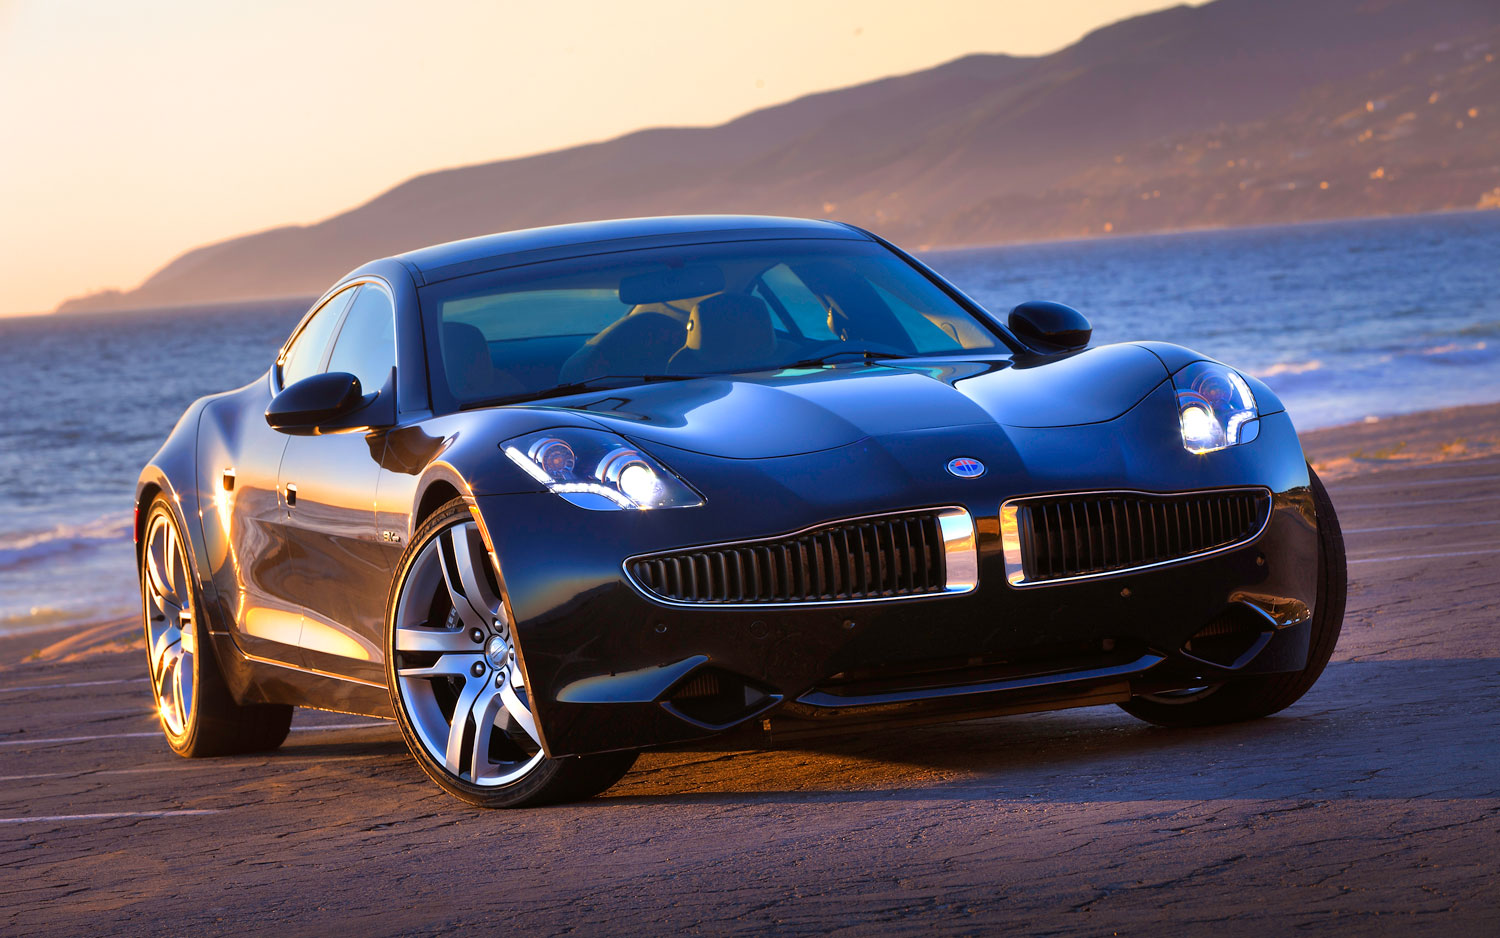 Auto and Cycle Fisker Resale Values Tumble On Uncertain Future.  Article by Edward A. Sanchez posted May 18, 2013